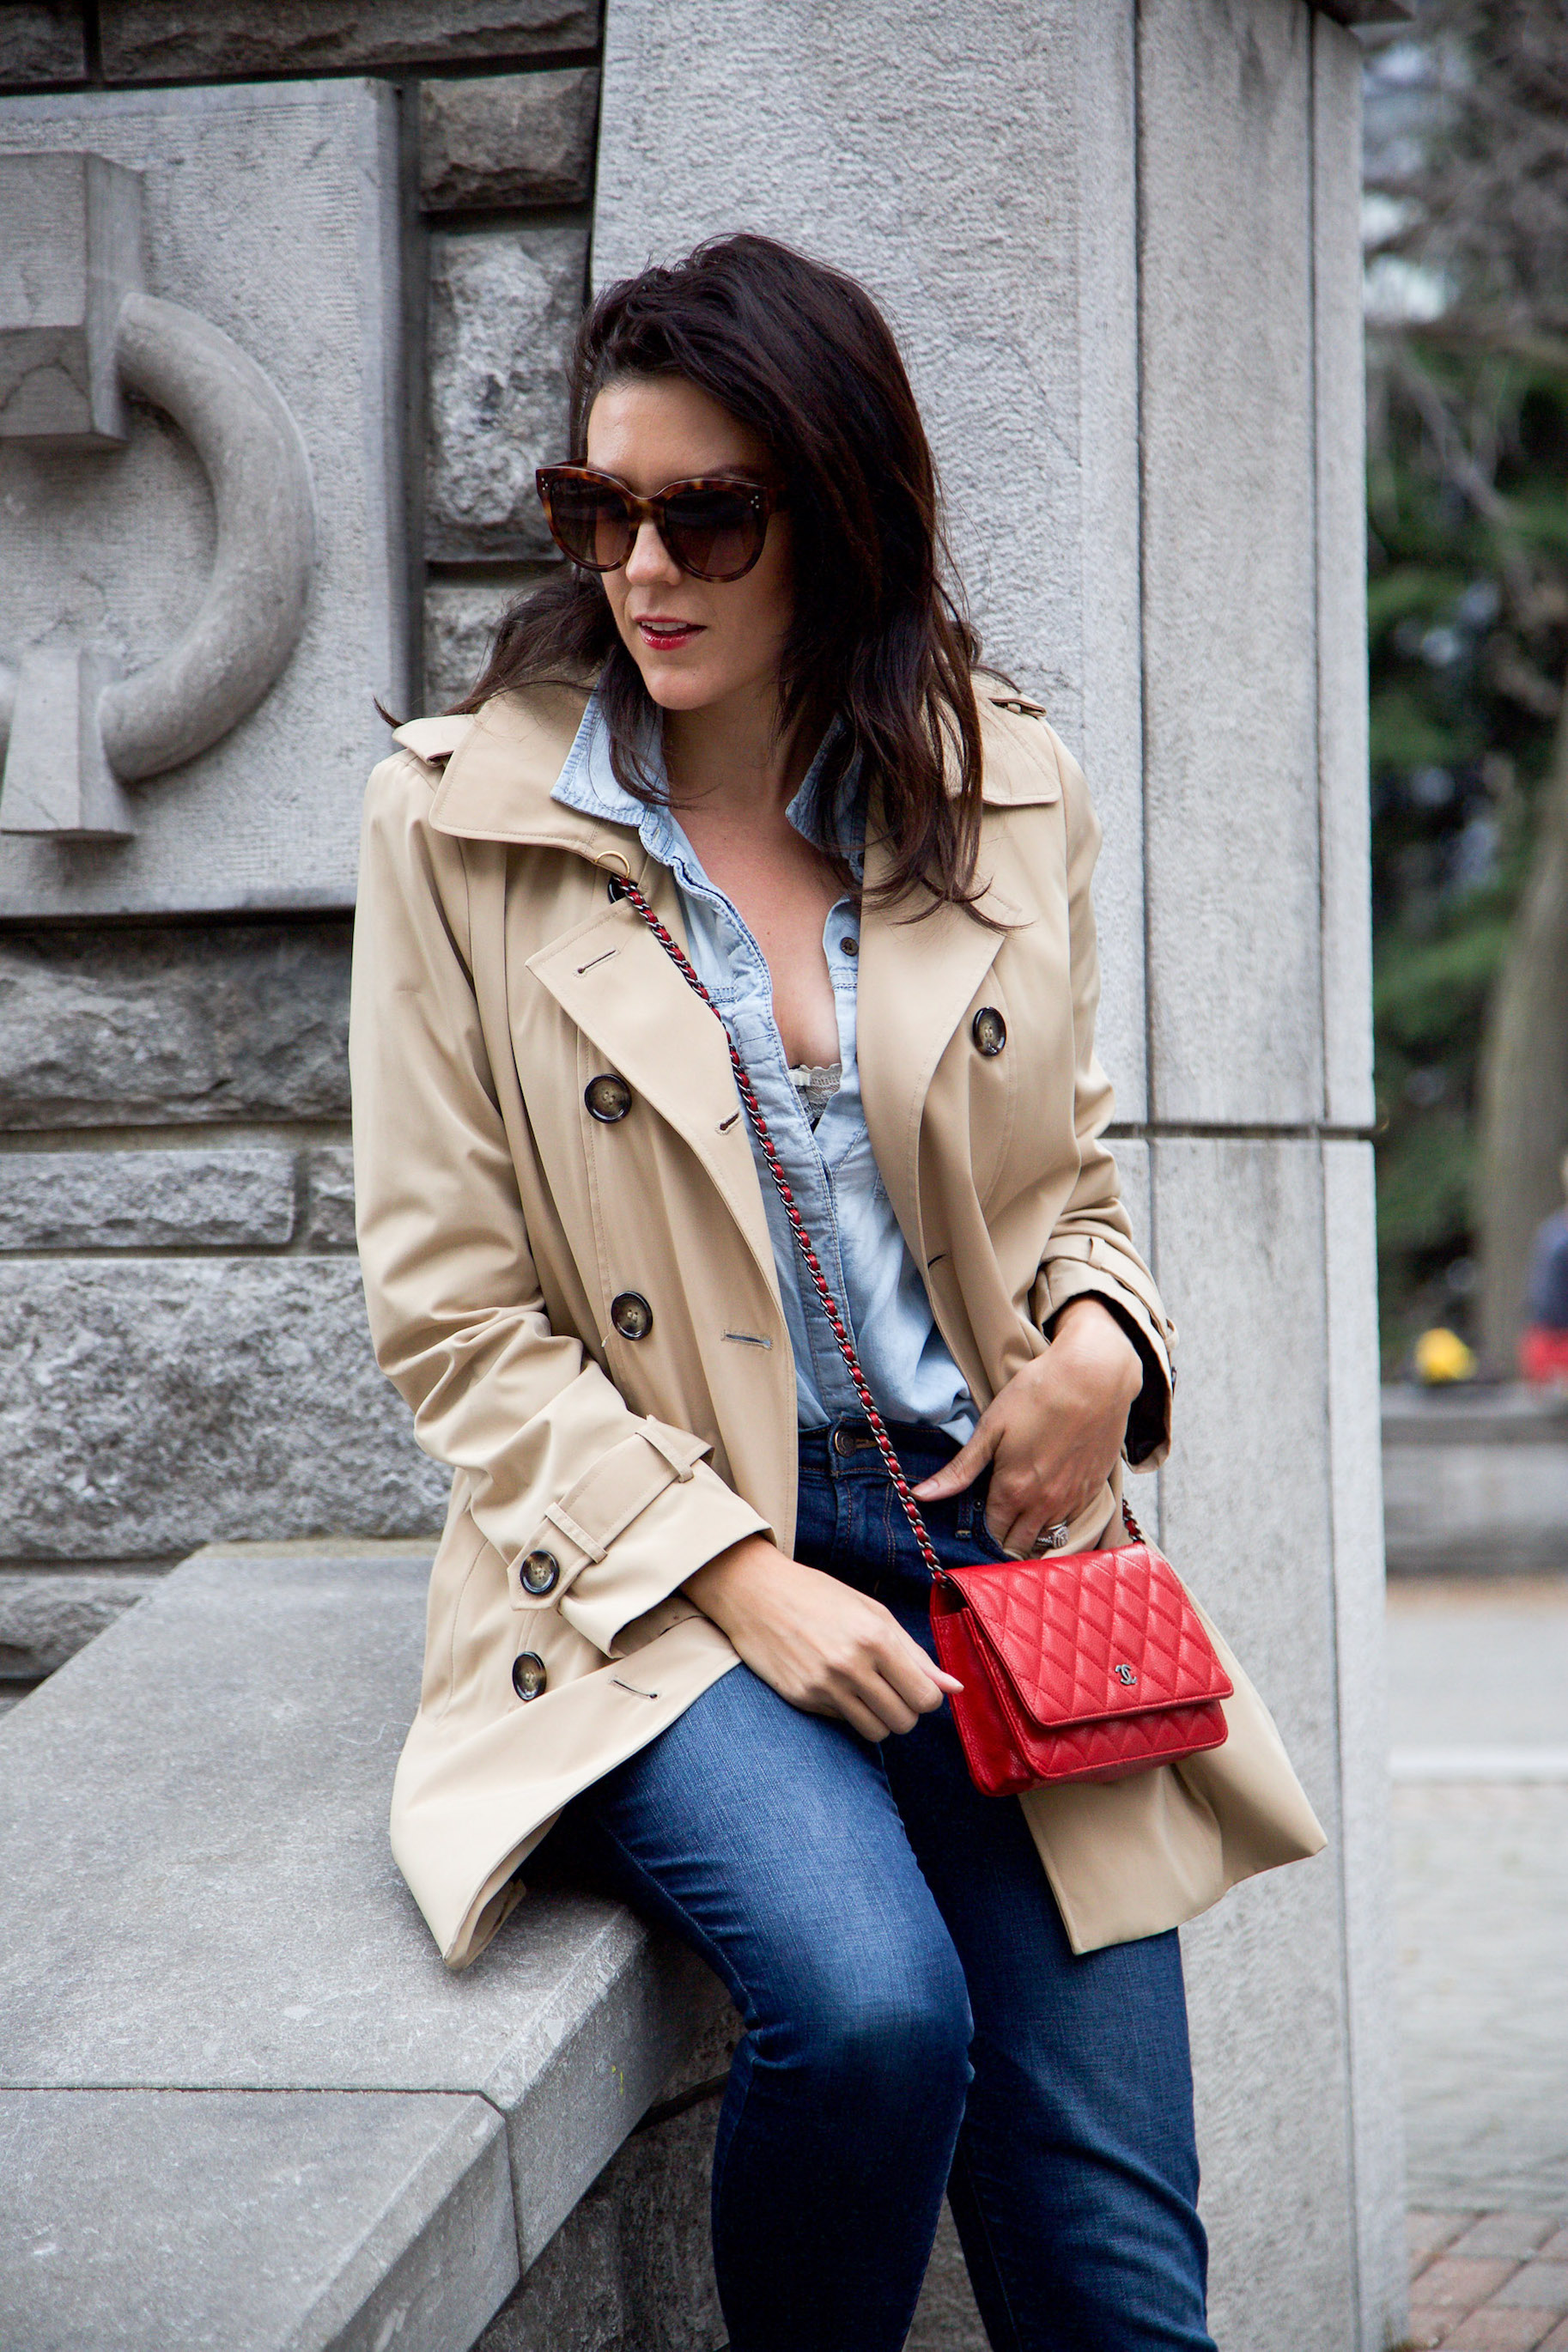 denim-on-denim-outfit-with-trench-coat-and-red-accessories4.jpg